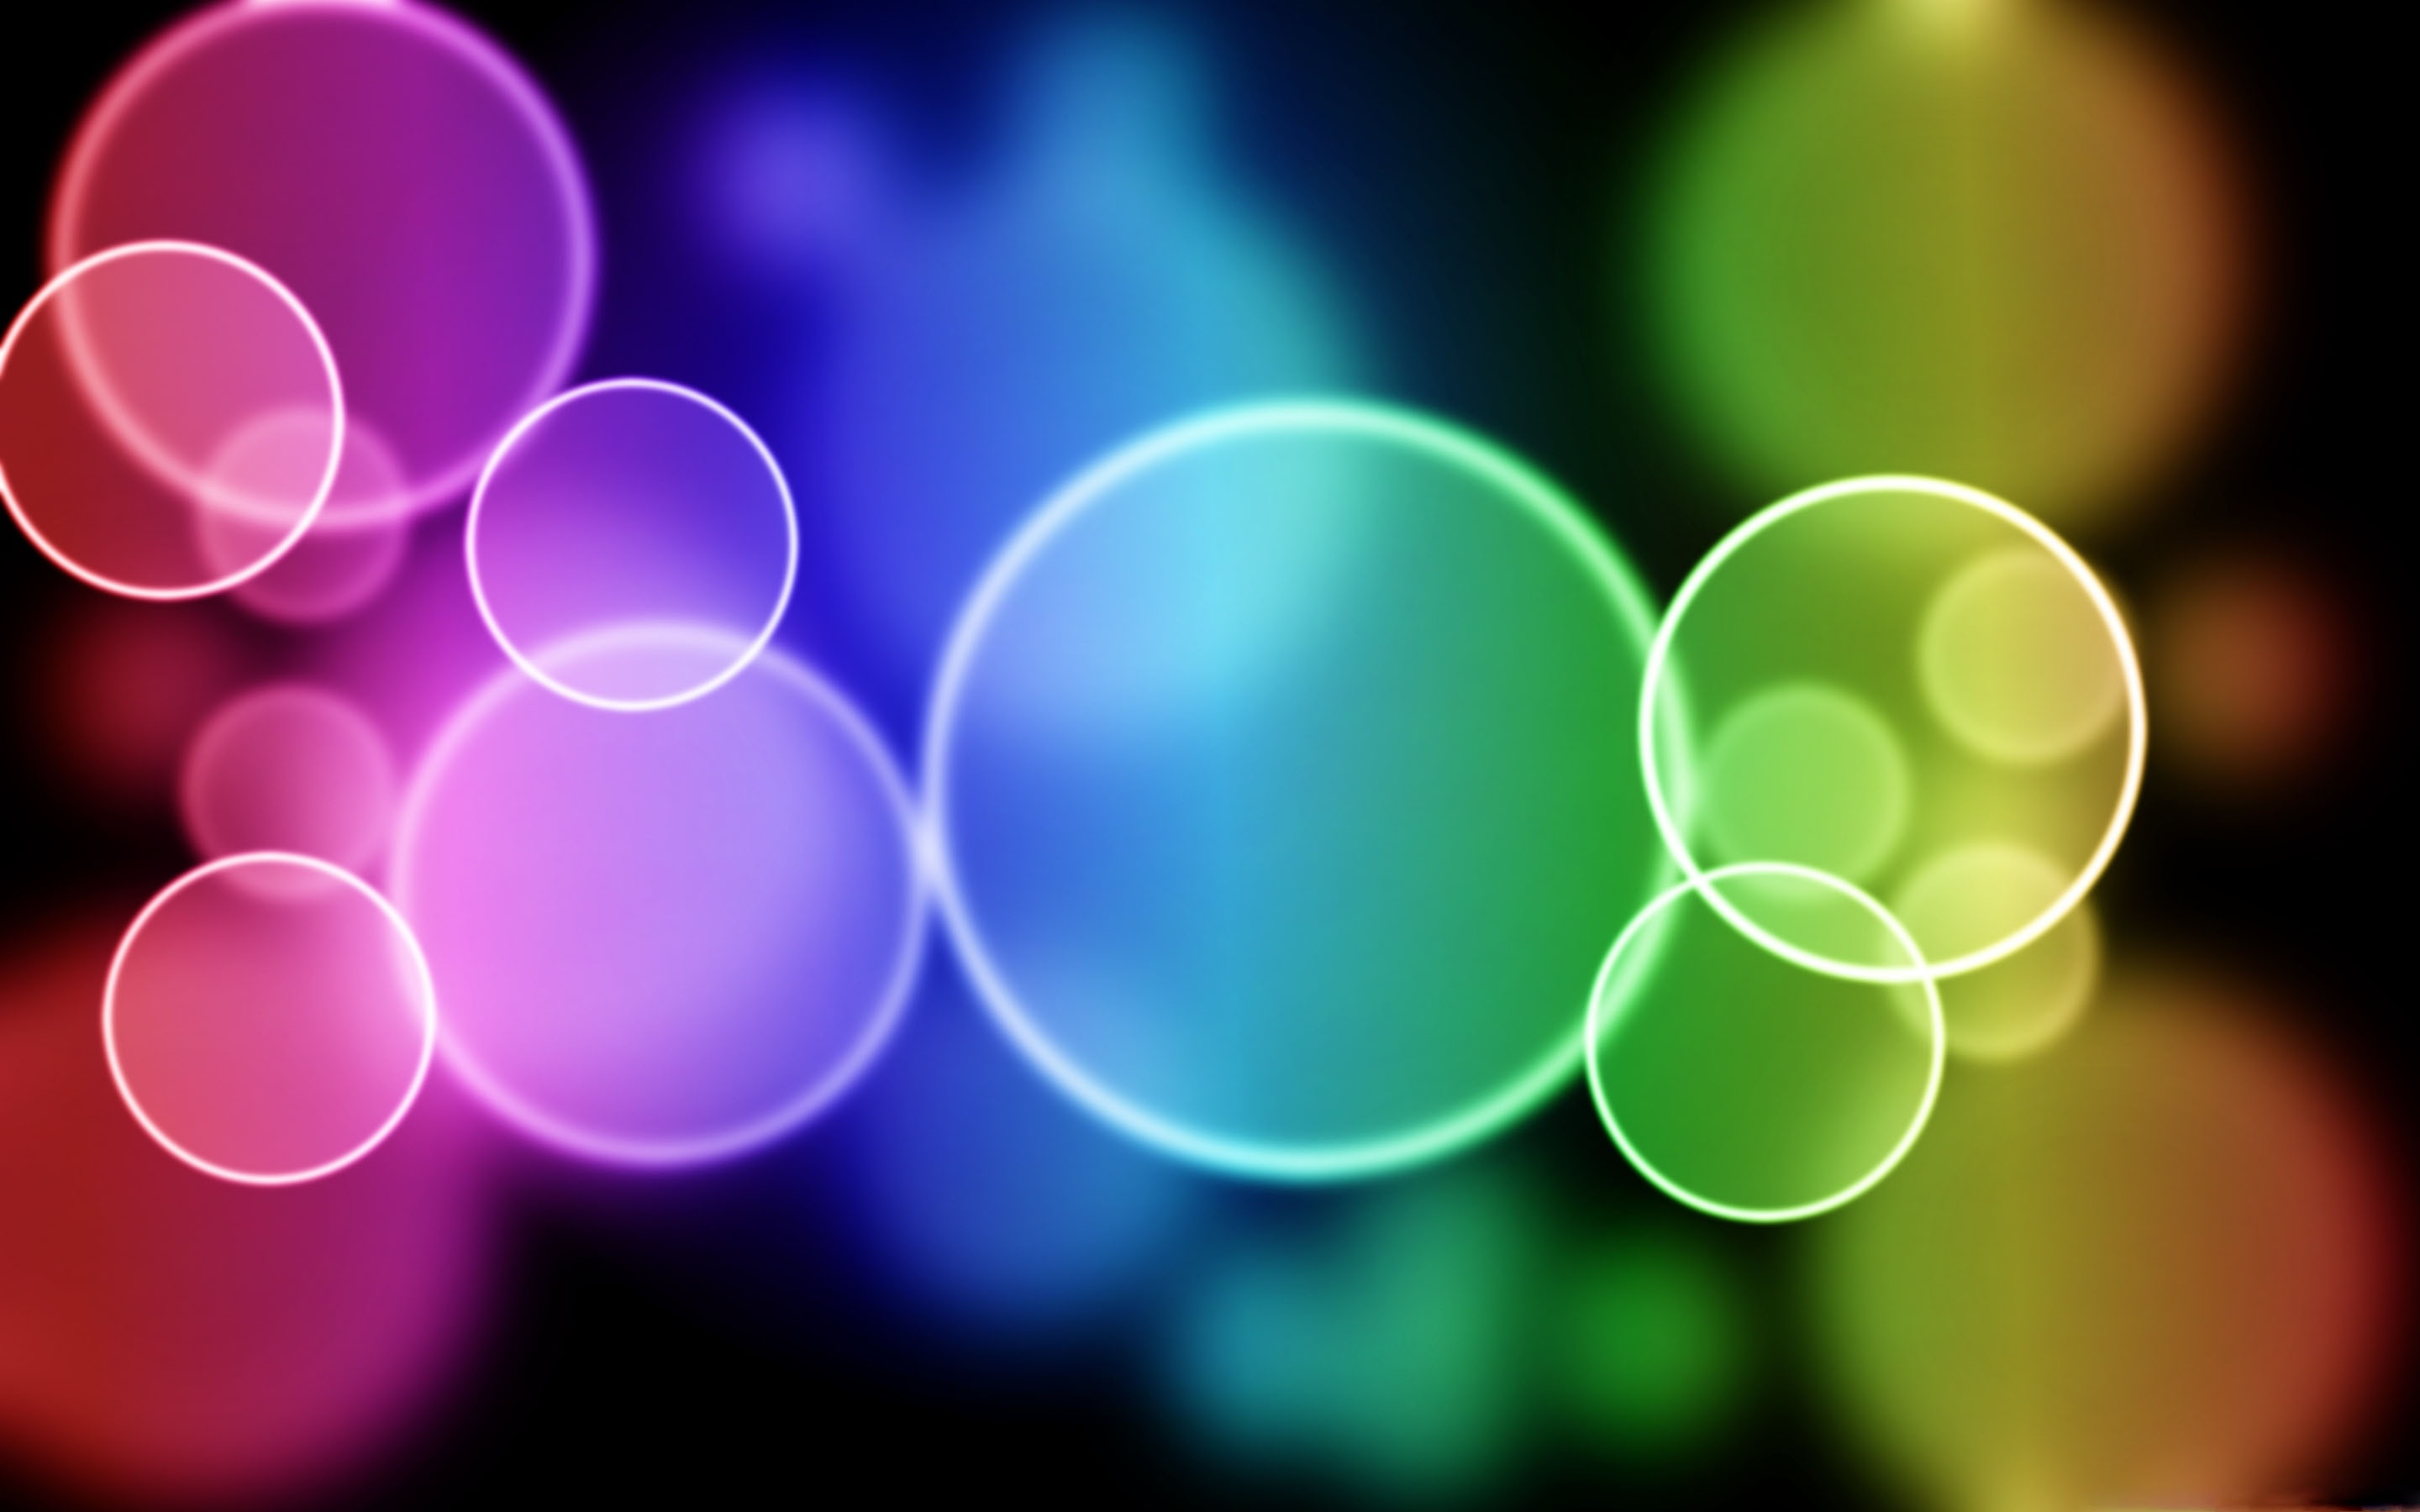 Colorful Bubbles Mac Wallpaper Download | Free Mac ...